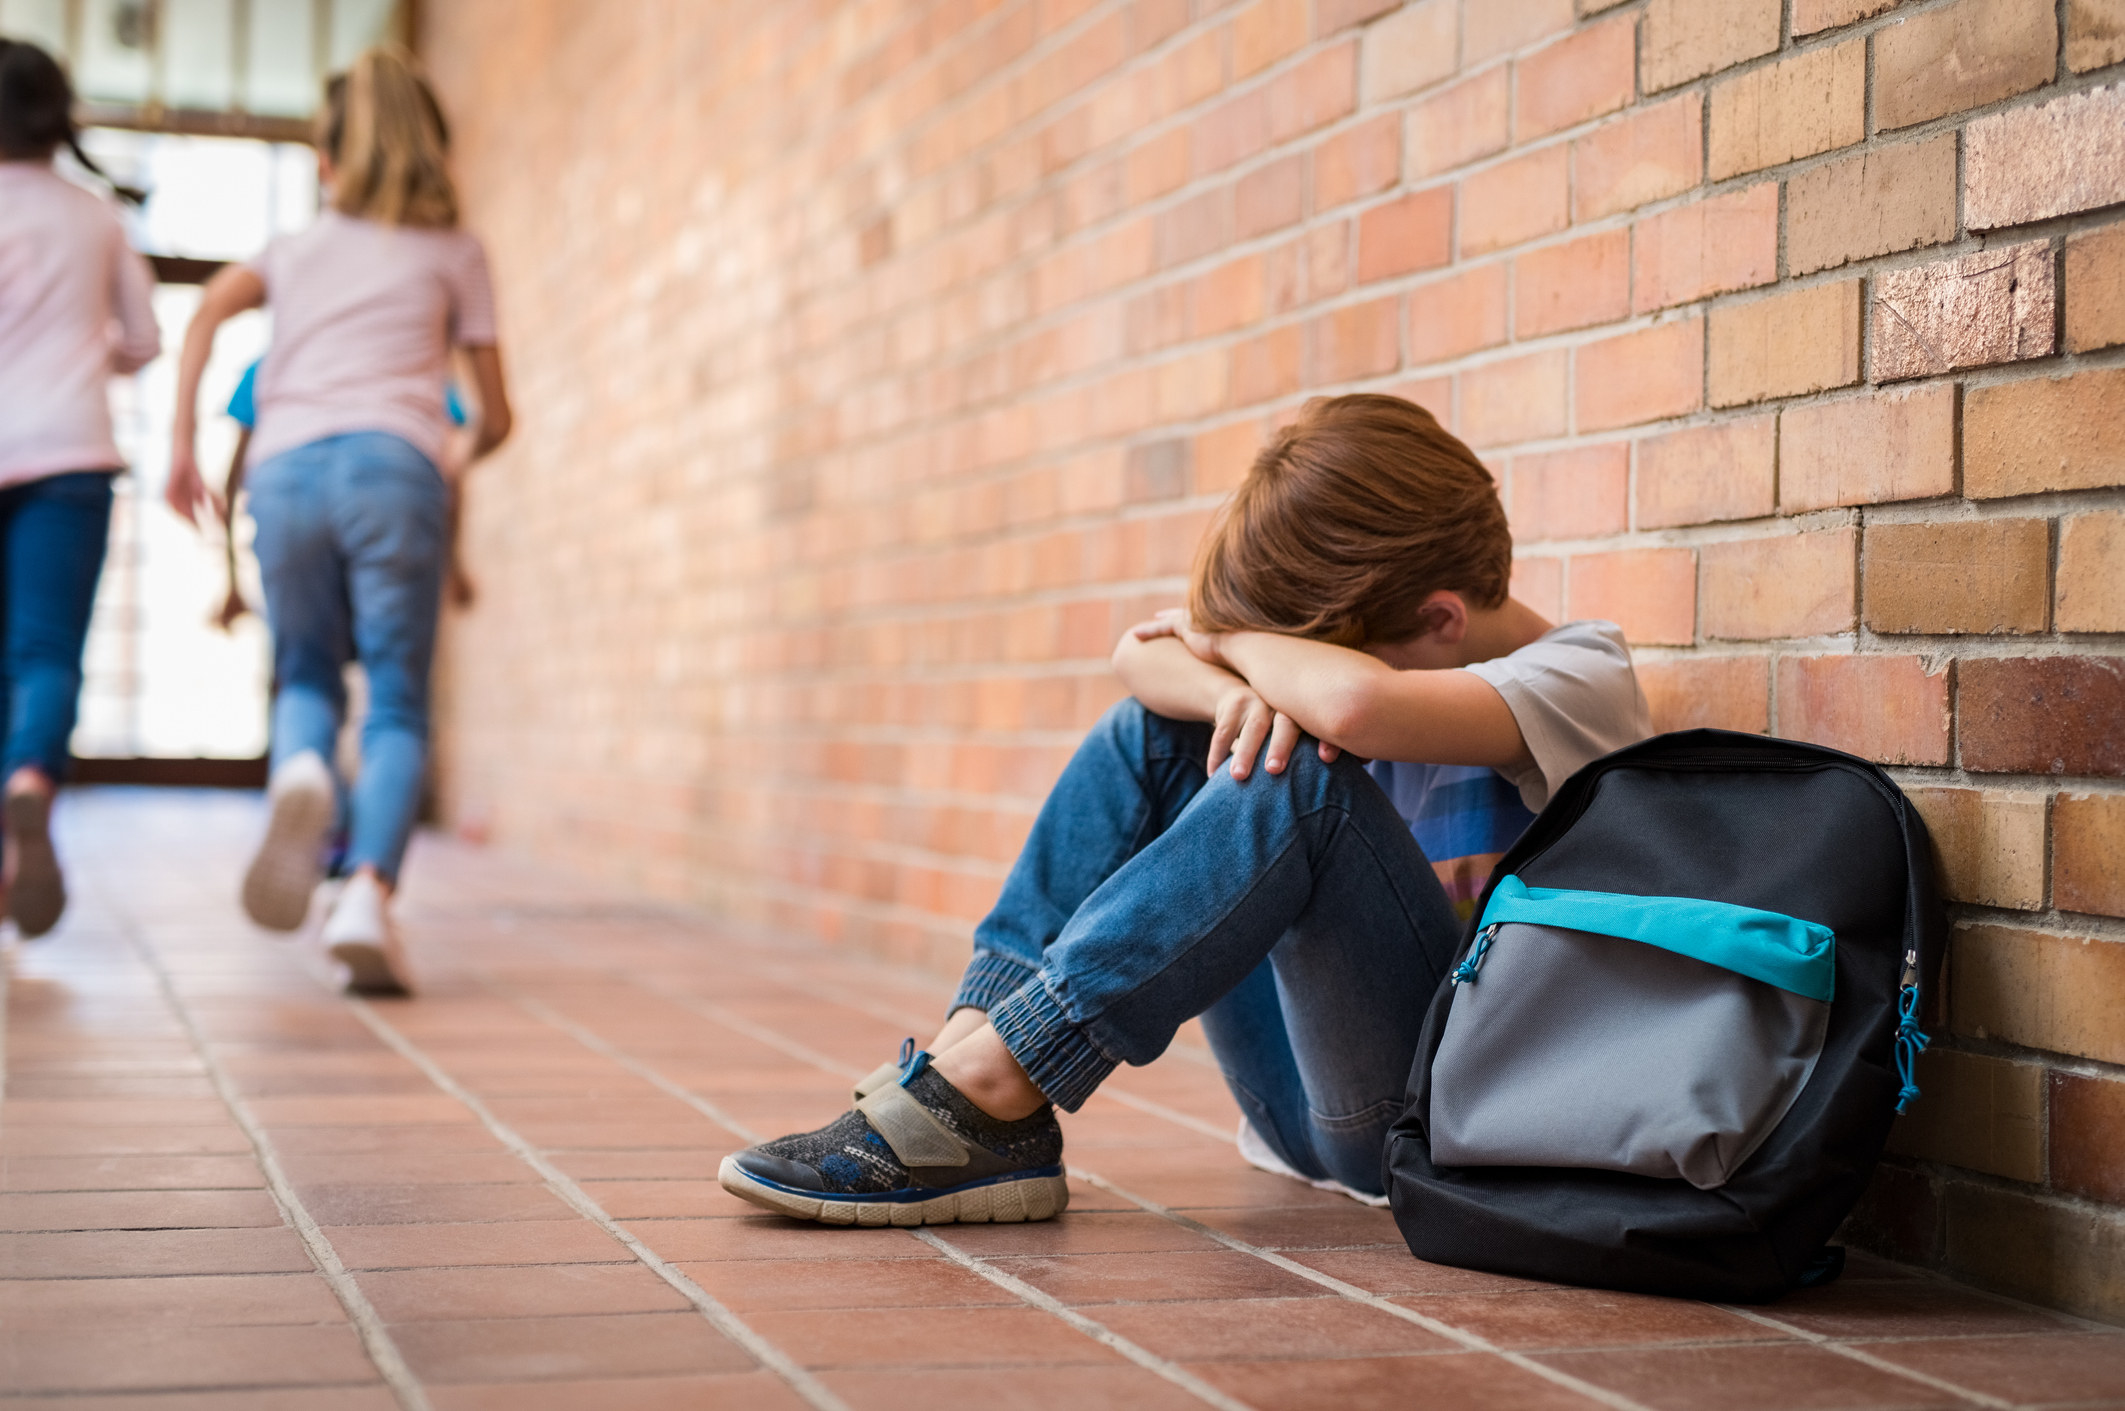 Young boy sitting alone outside in a hallway while two young girls run in the background